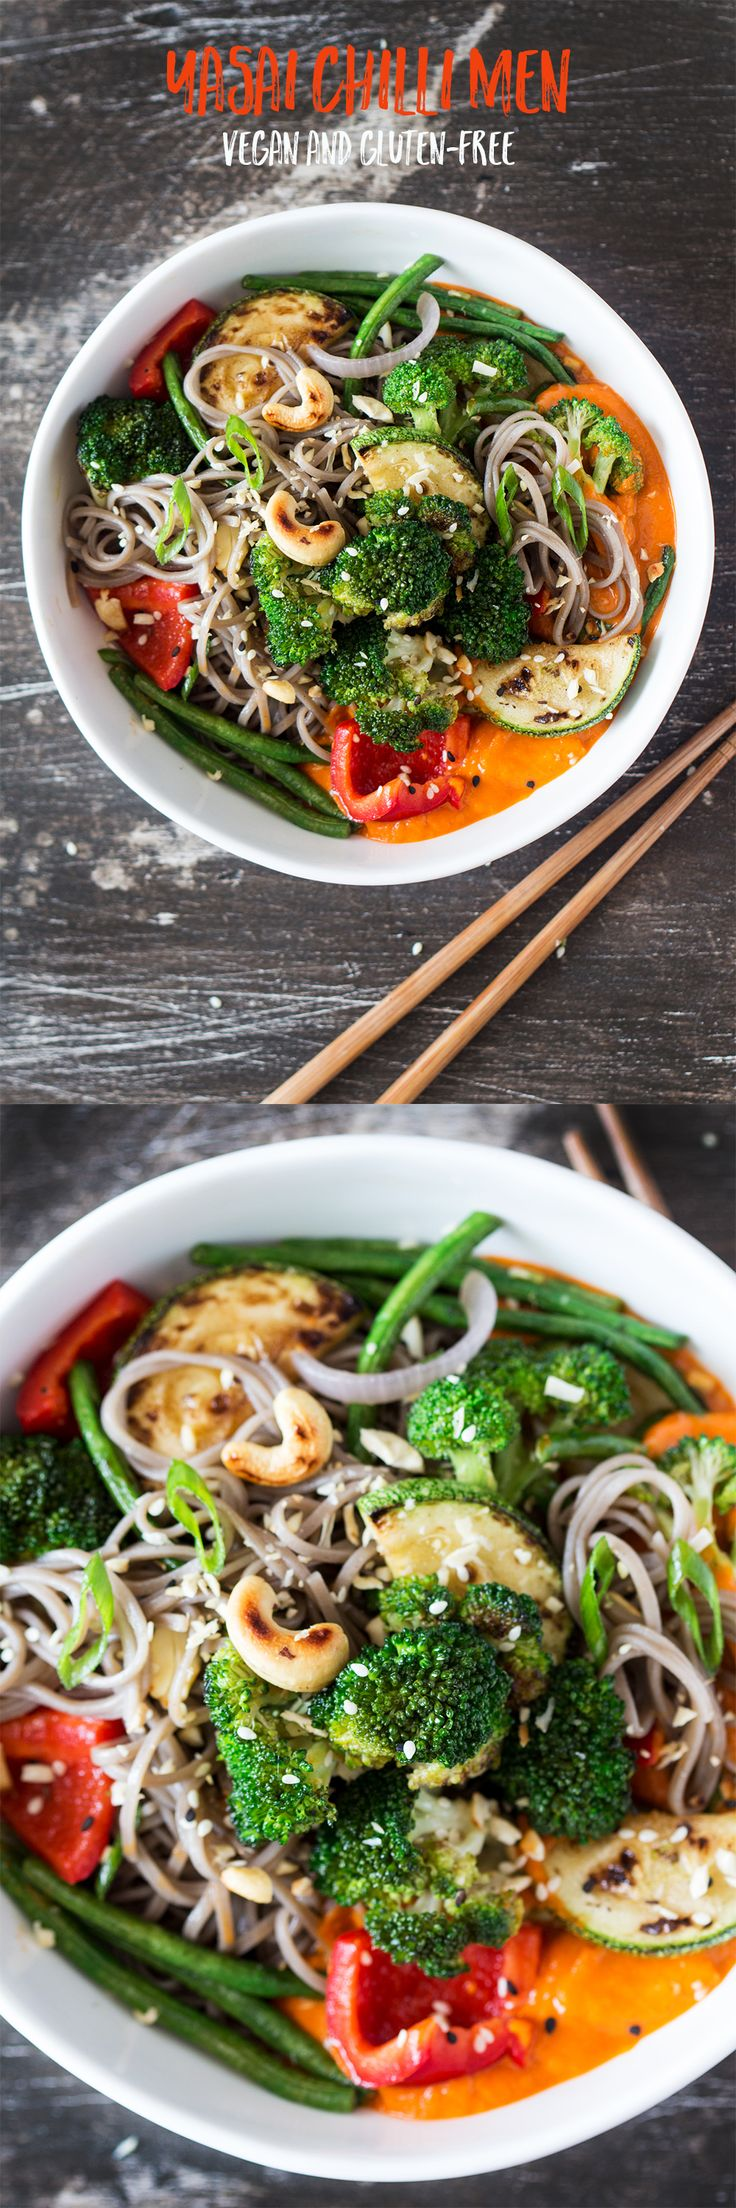 yasai chilli men is a simple japanese fusion dish inspired by wagamama…